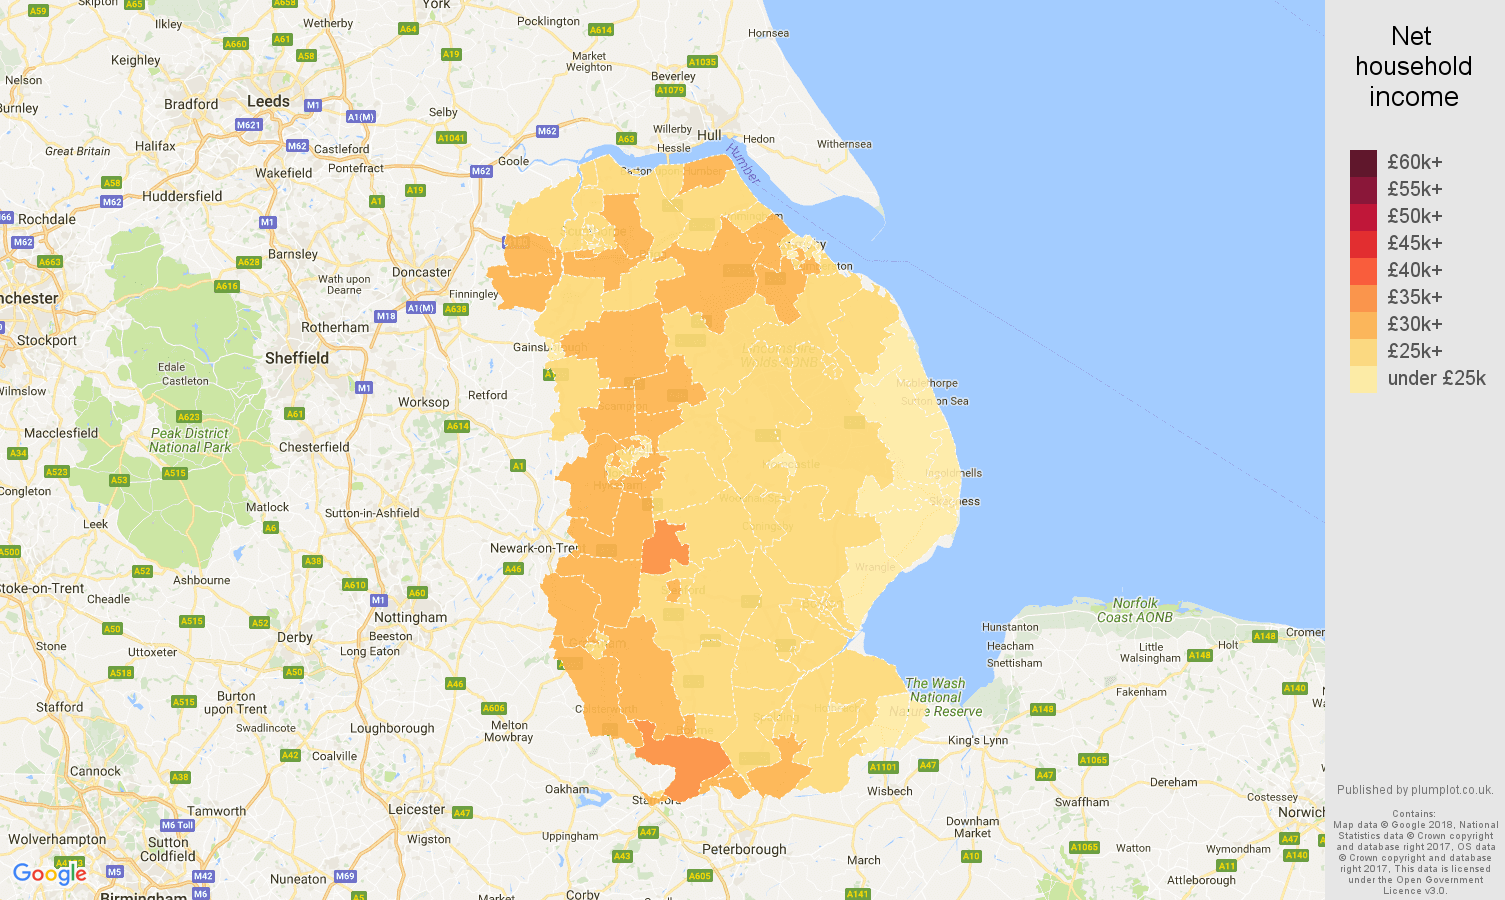 Lincolnshire net household income map